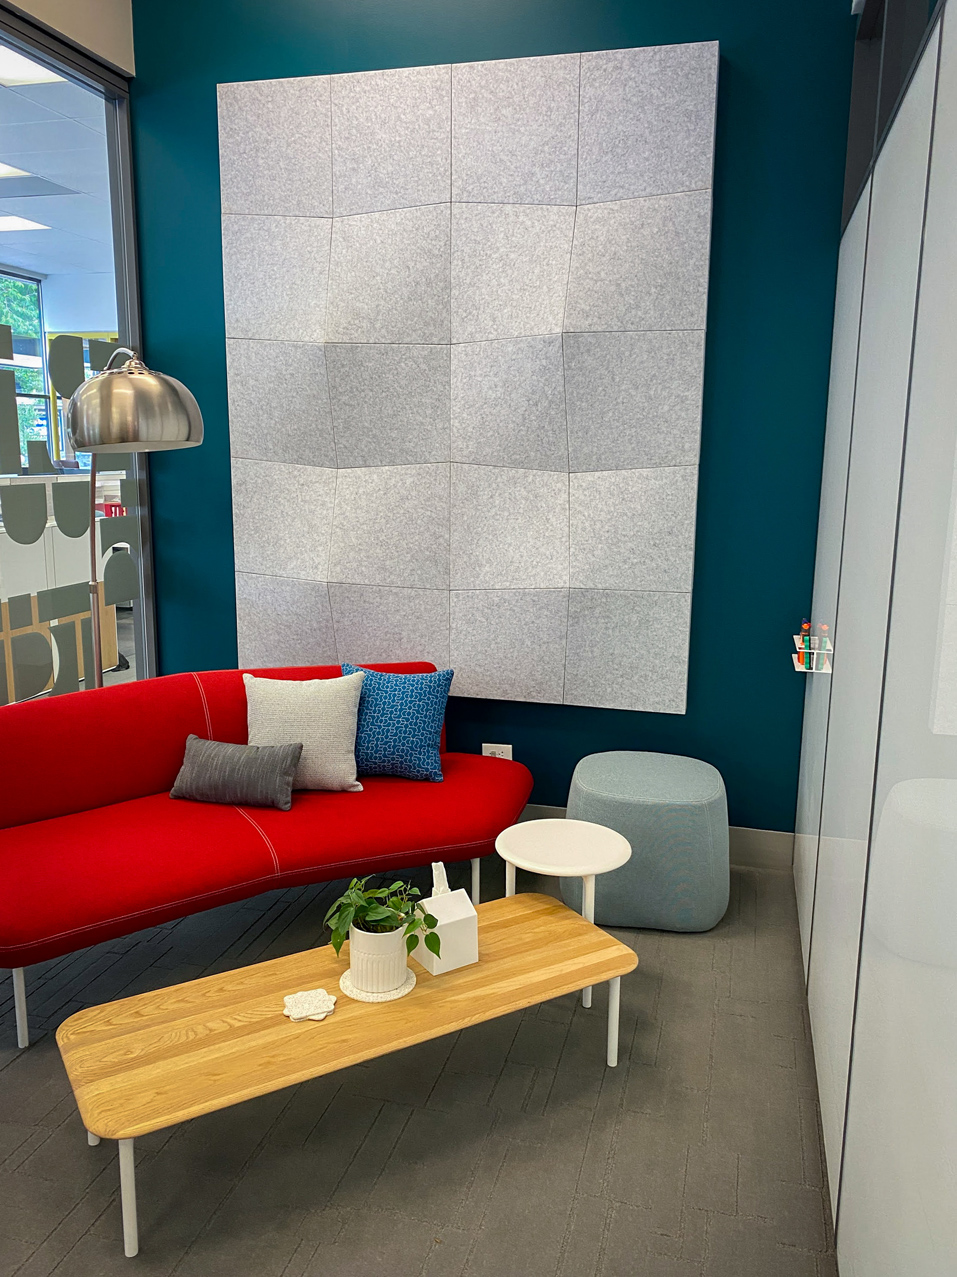 Acoustic Product Wall Solutions In Office (11)